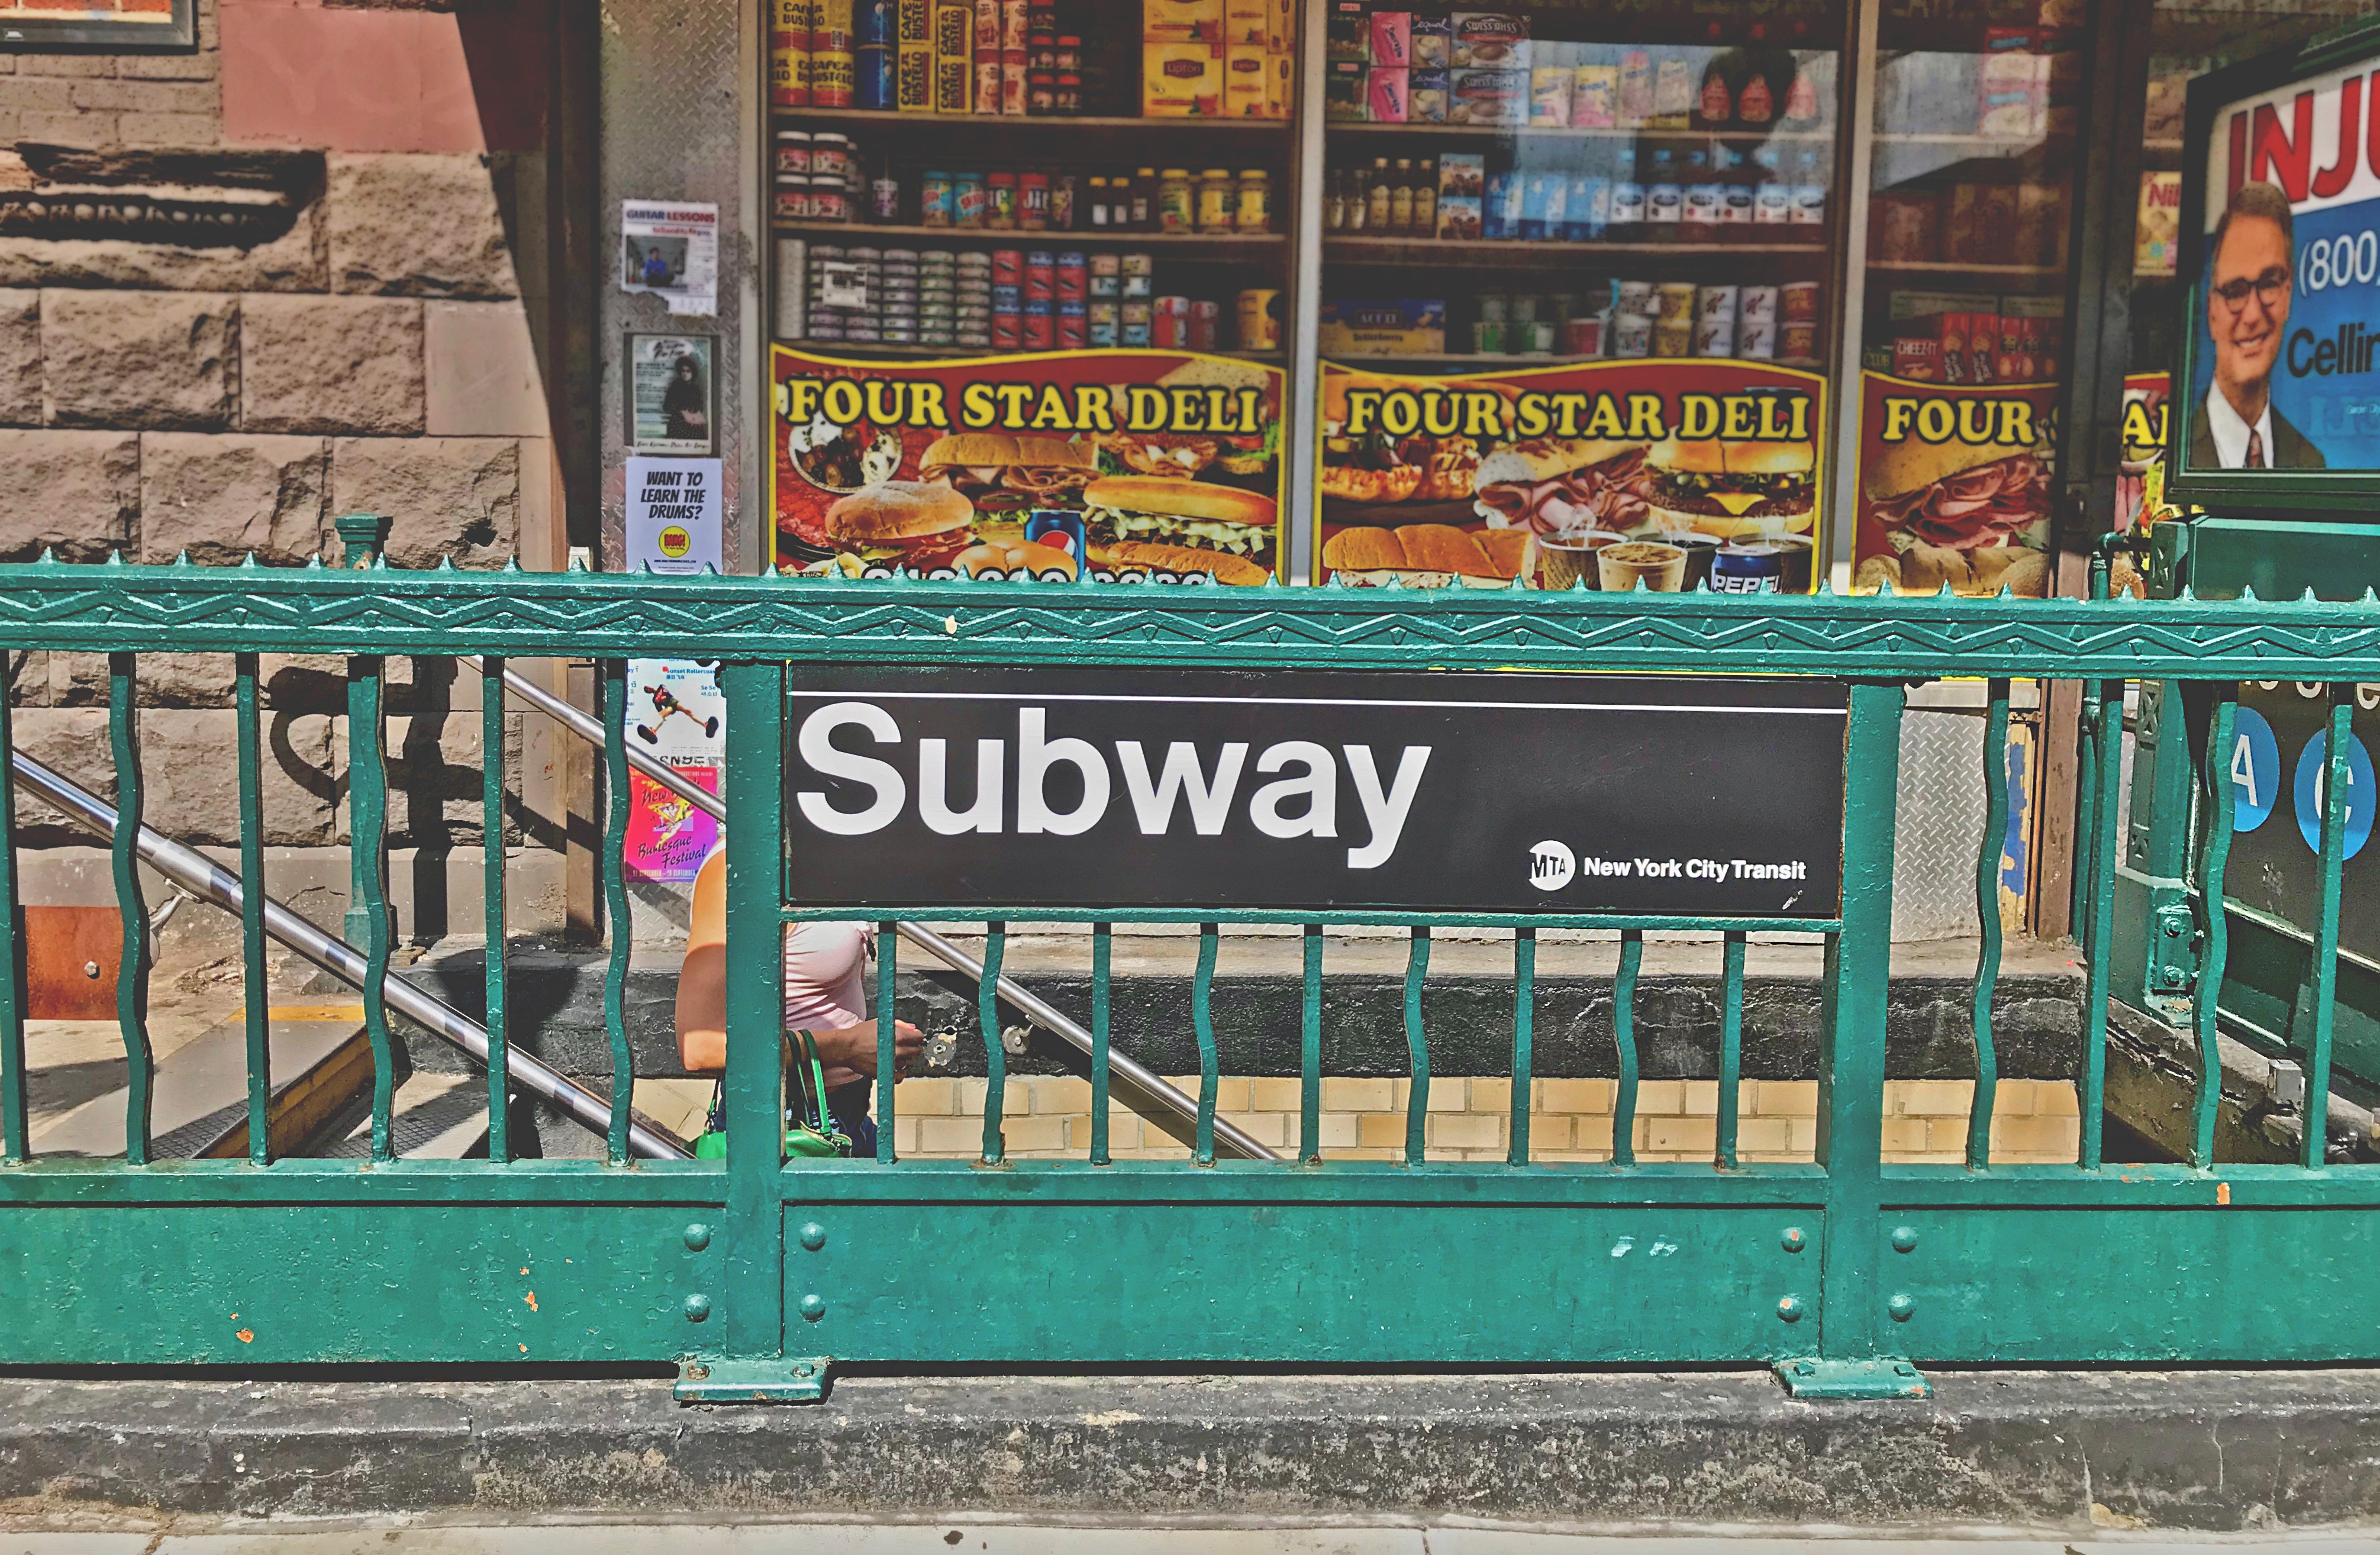 subway-commuter-benefits-in-new-york-city-what-are-the-current-laws-benefits-for-employees-and-employers